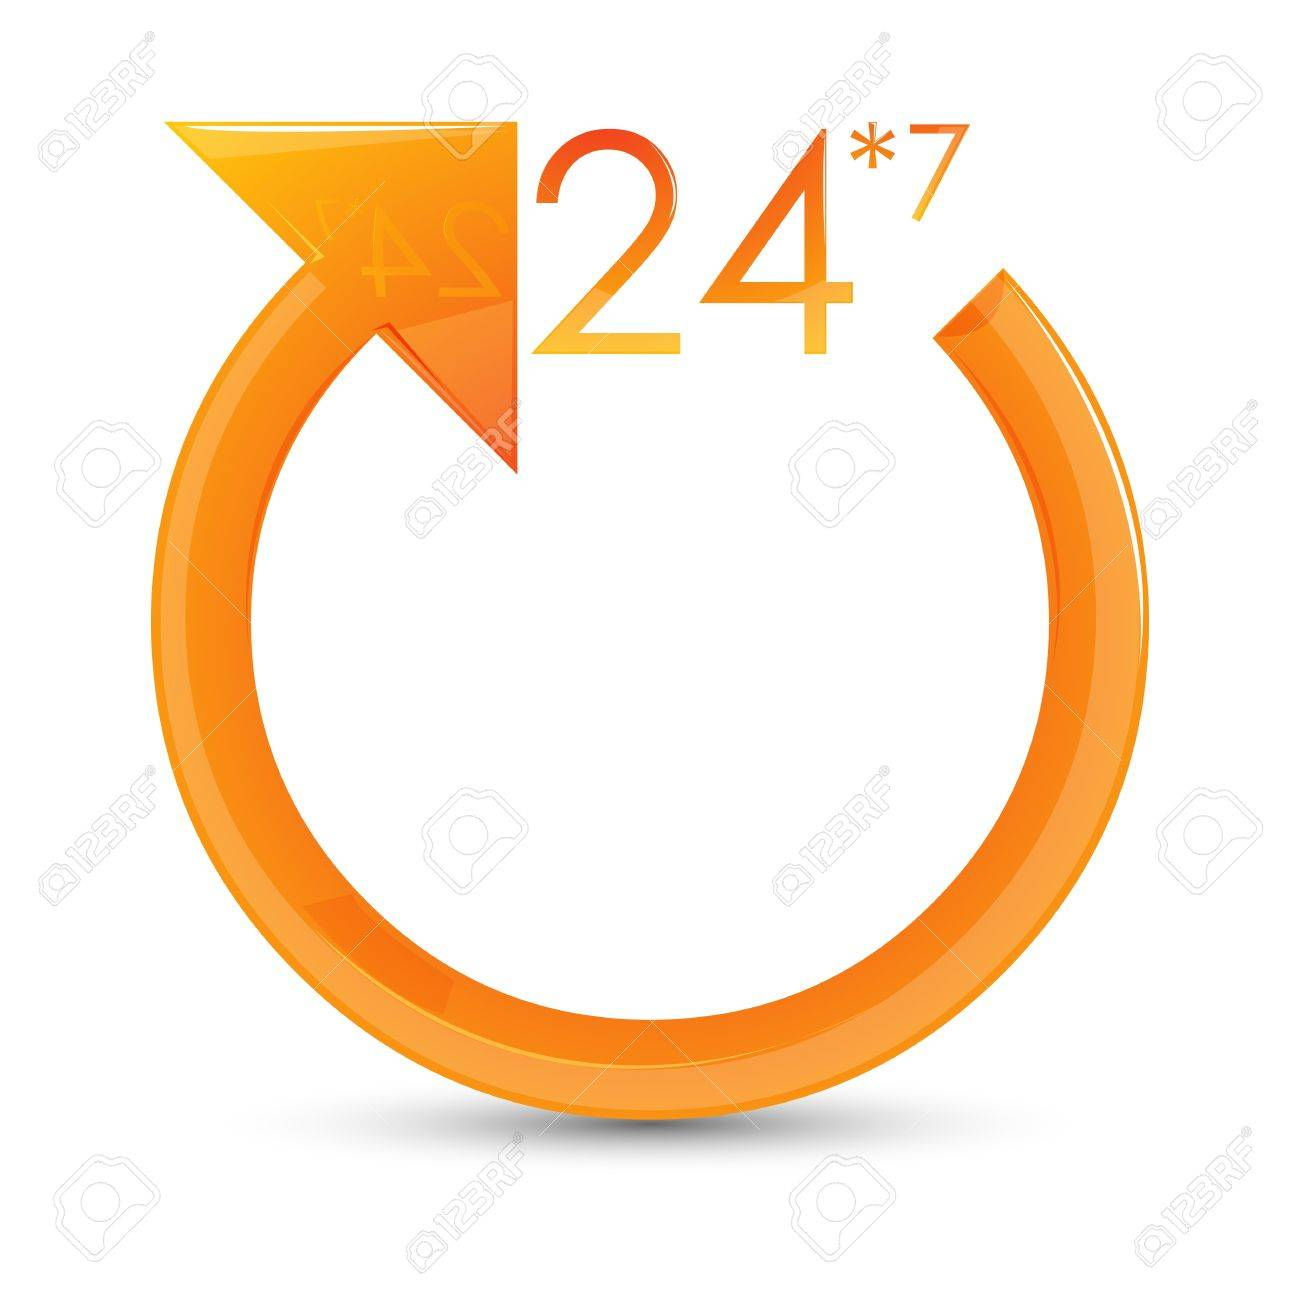 illustration of 24*7 circle on white background Stock Vector - 9269315